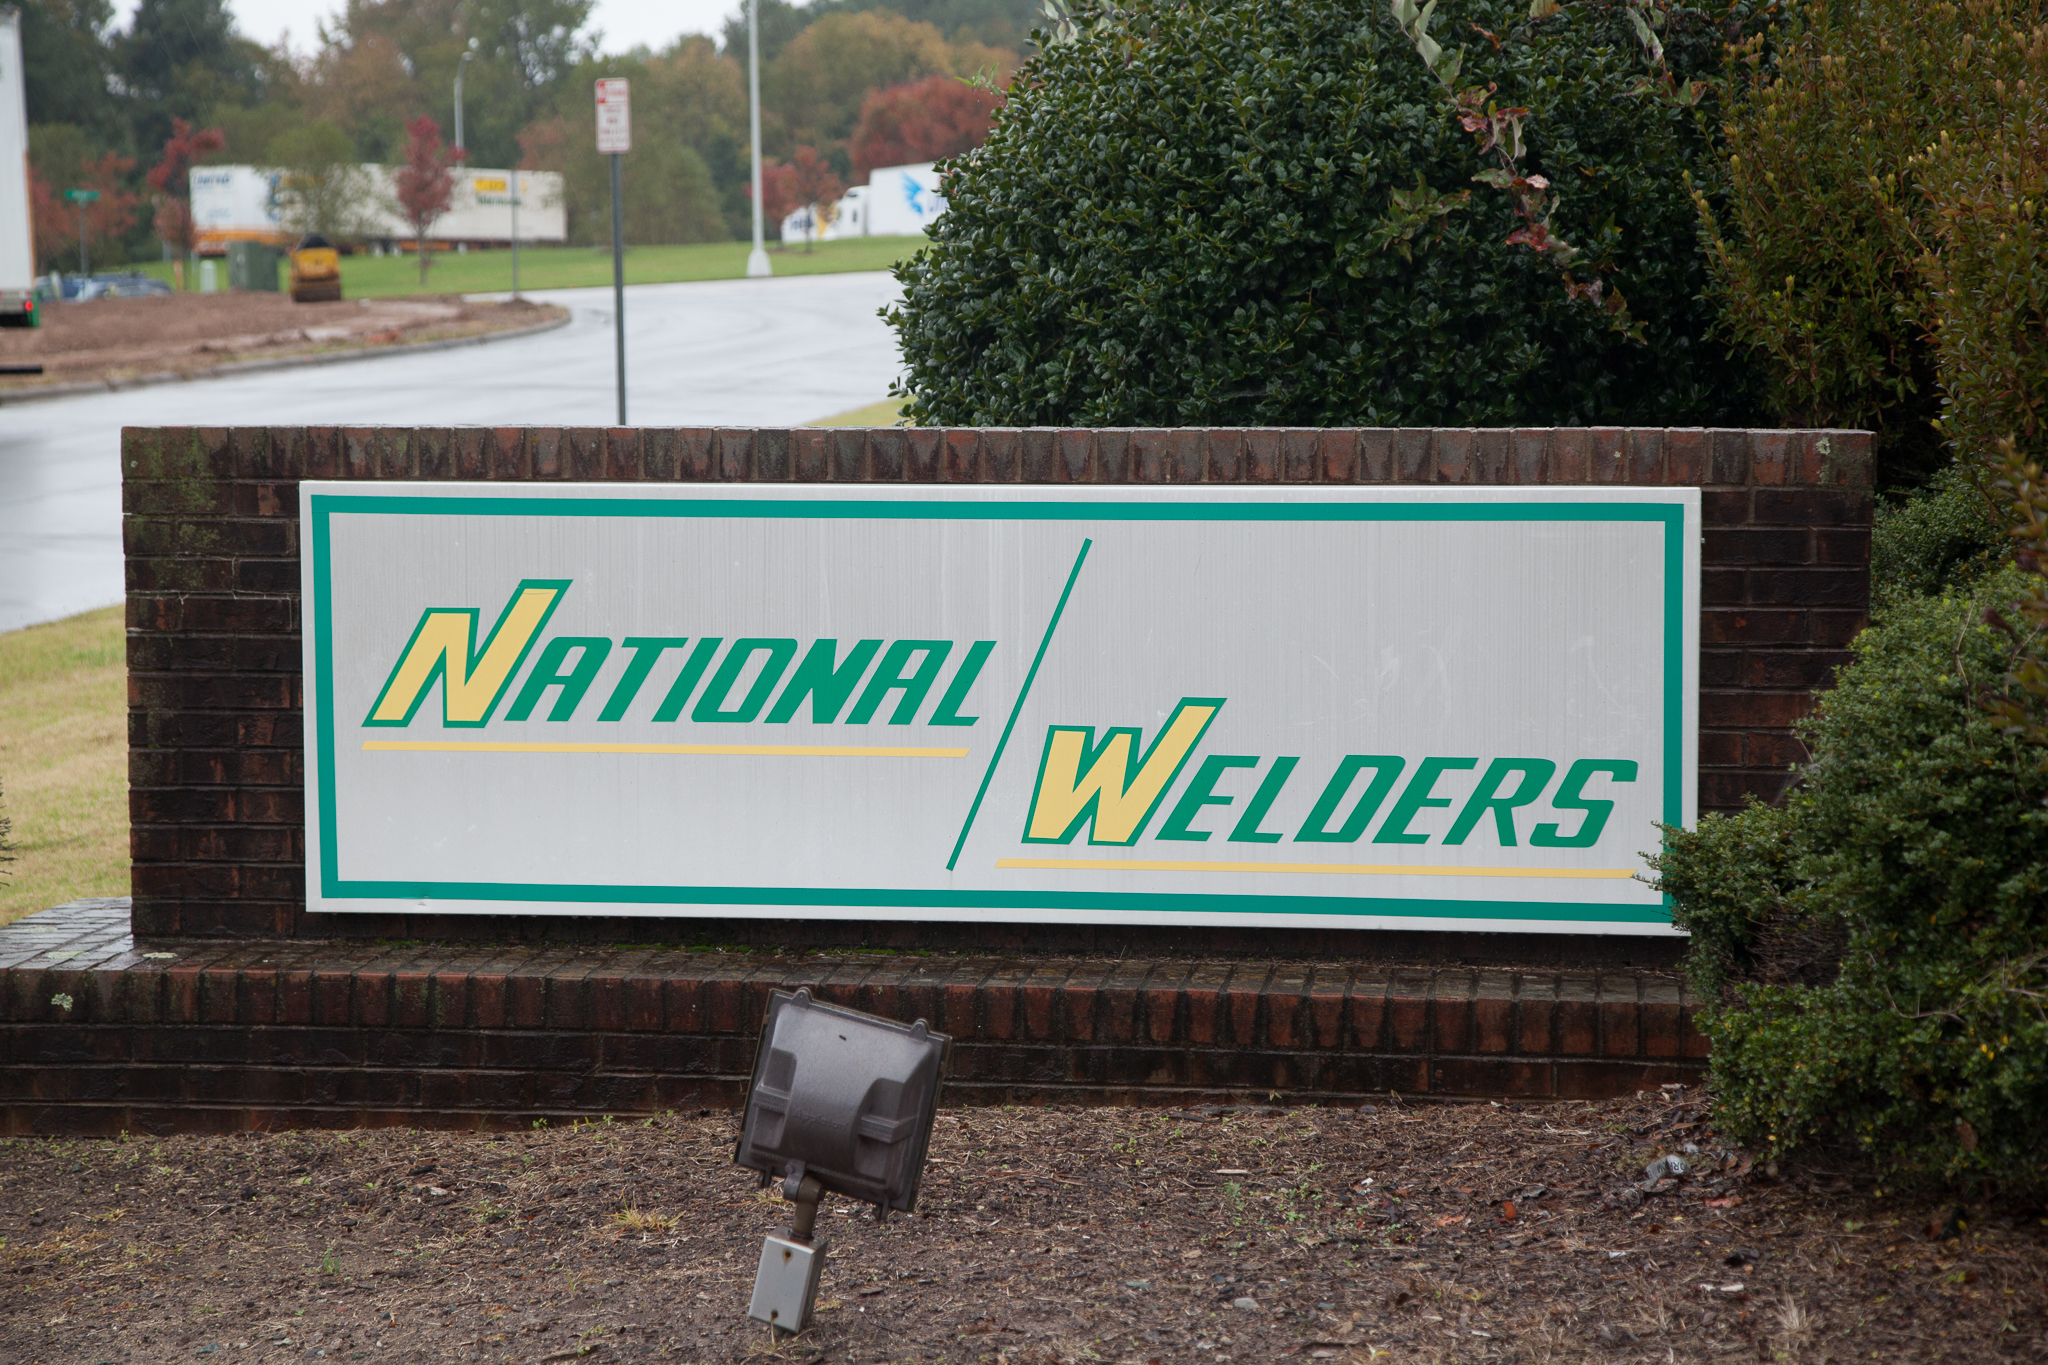 Air Gas National Welders